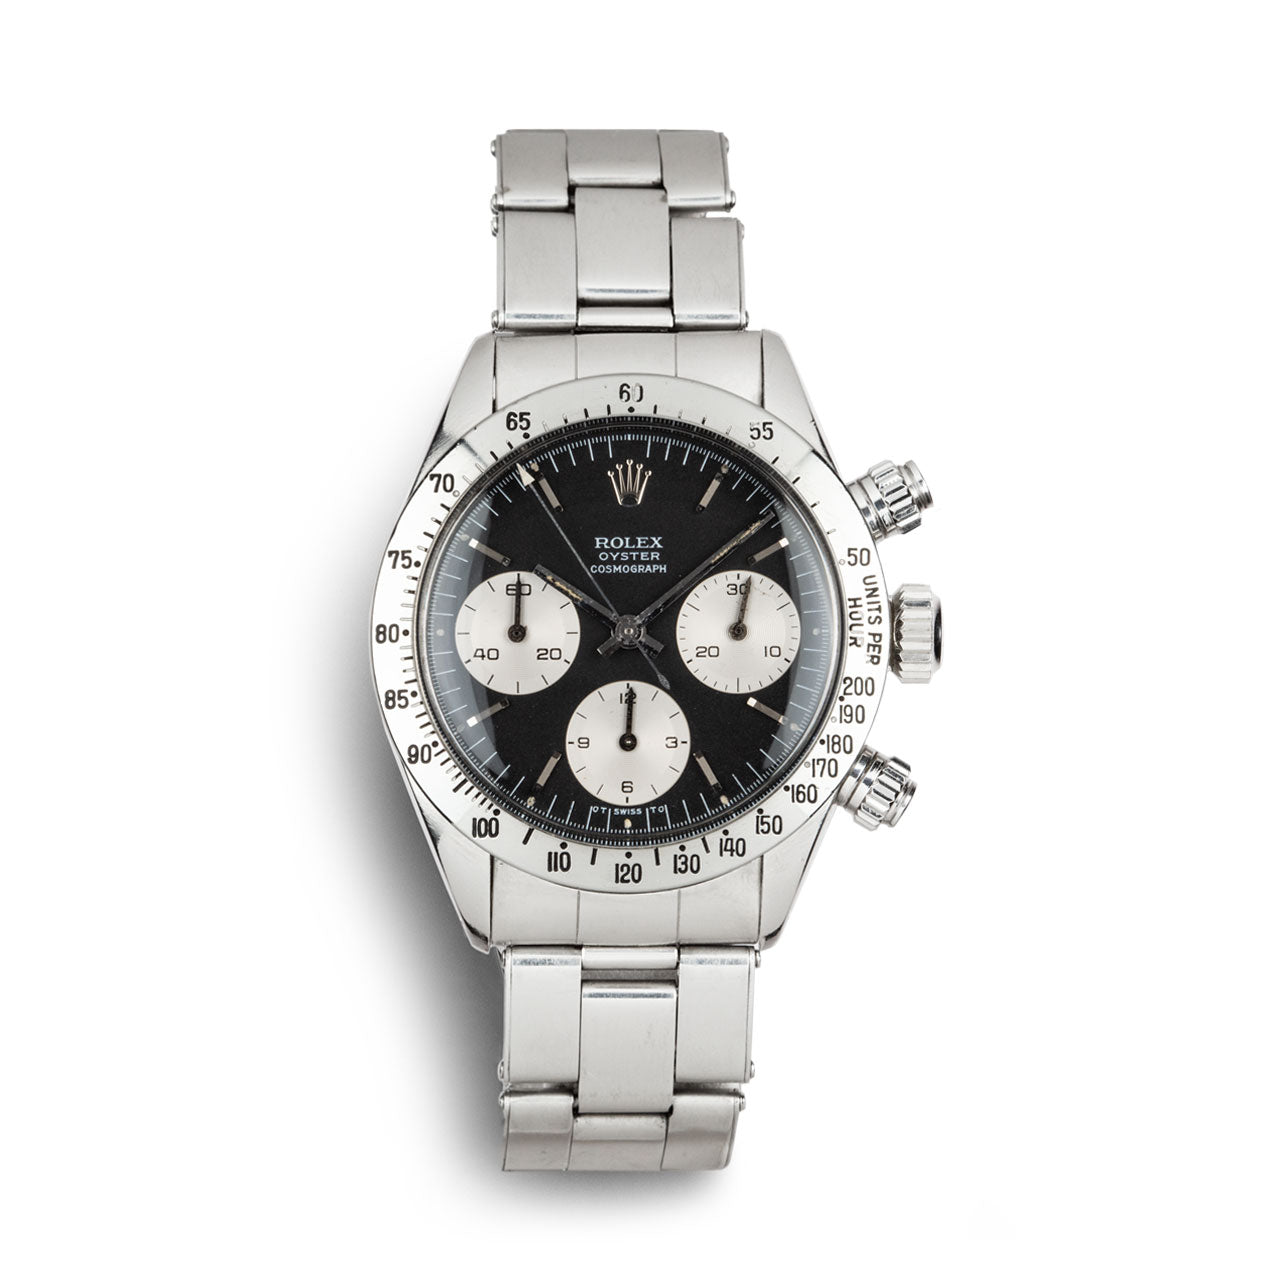 1973 Rolex Daytona Reference 6265 Watch